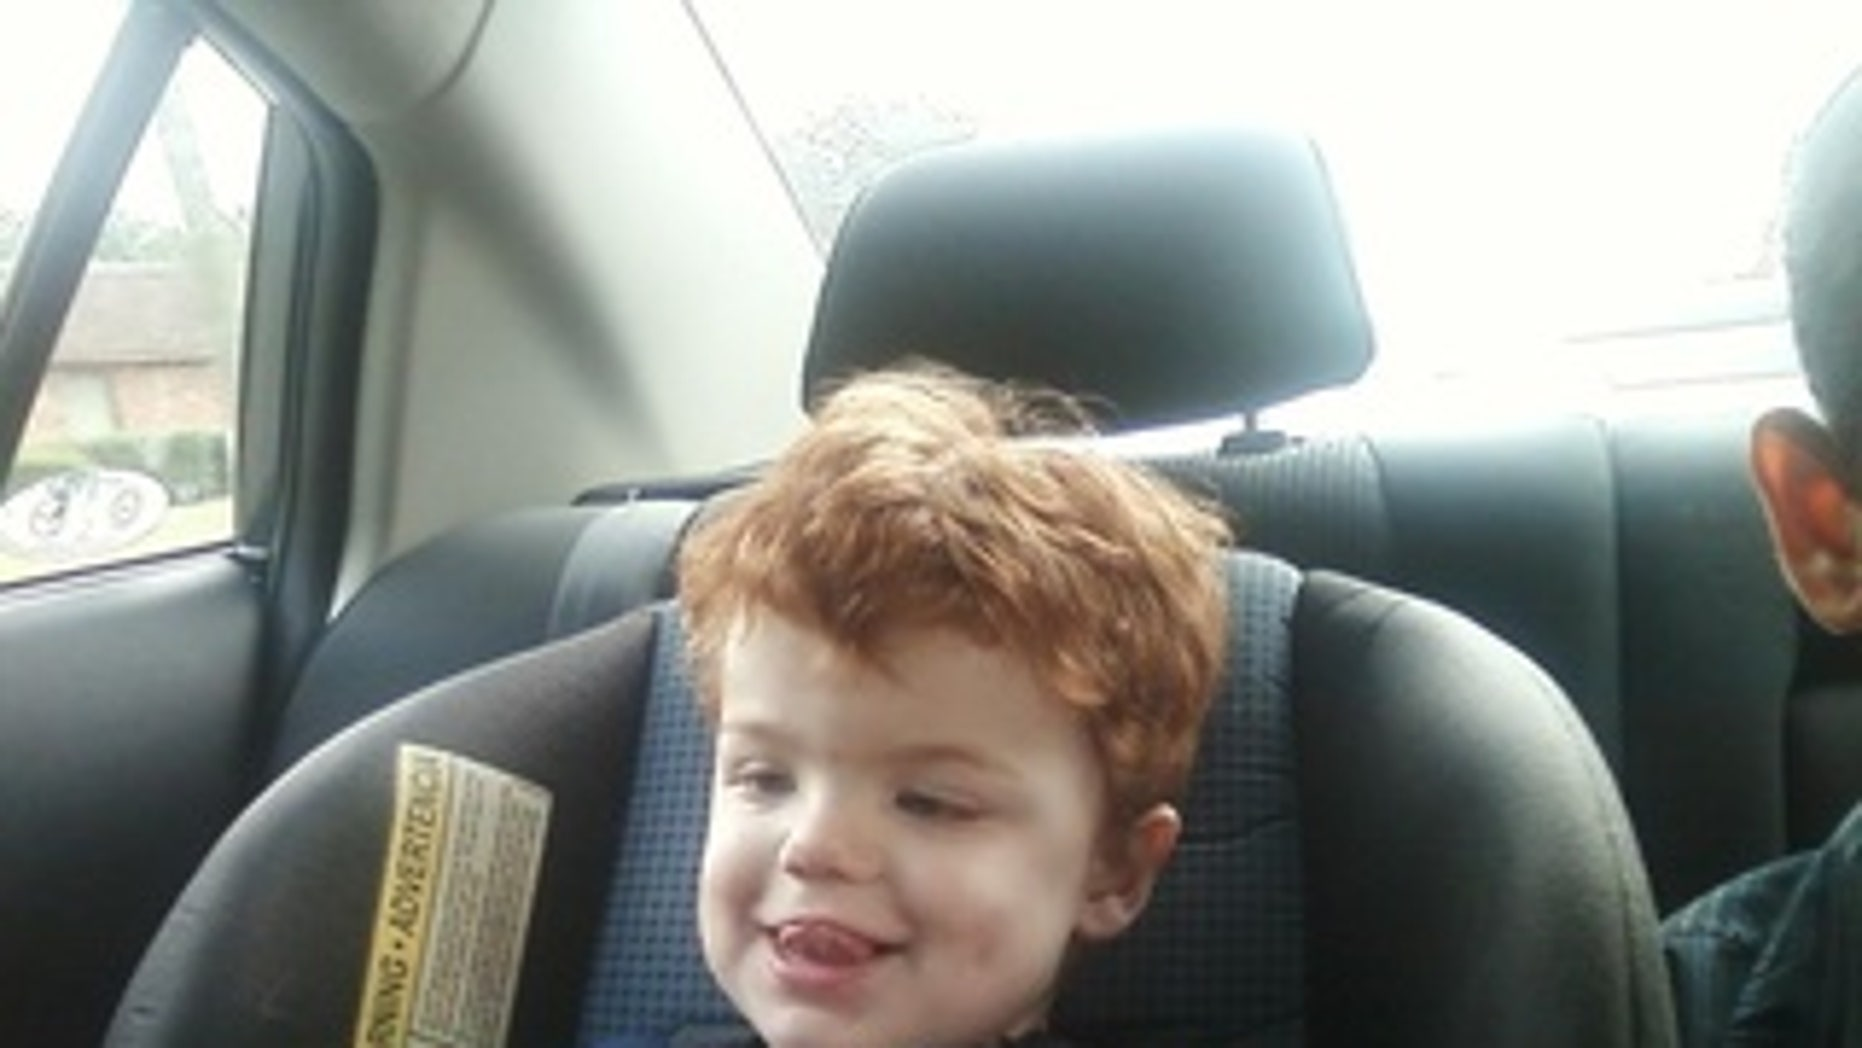 This undated photo shows missing 2-year-old Devin Davis.